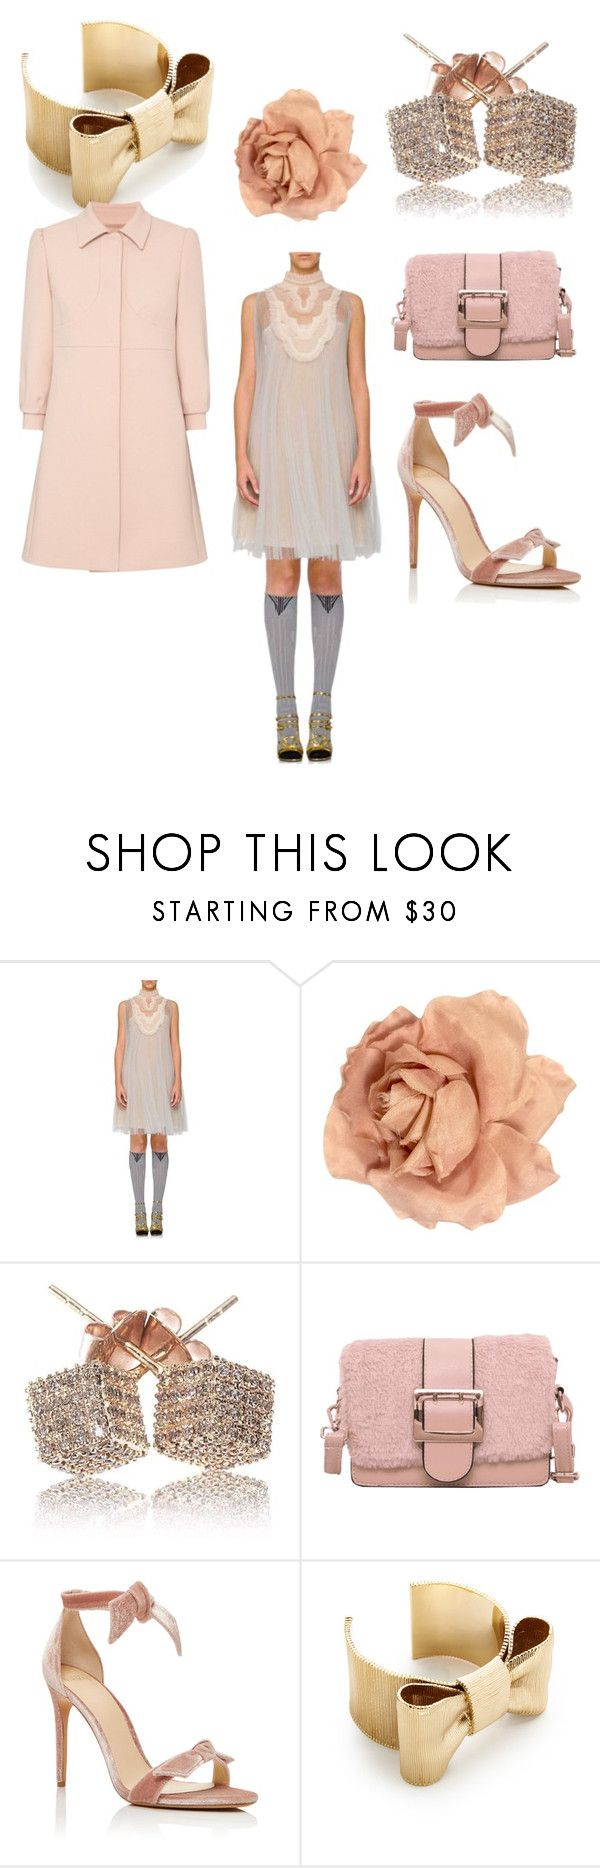 """Delicate rose"" by cottoncandyappleclovers ❤ liked on Polyvore featuring Prada, Chanel, Alexandre Birman, Kate Spade and RED Valentino"